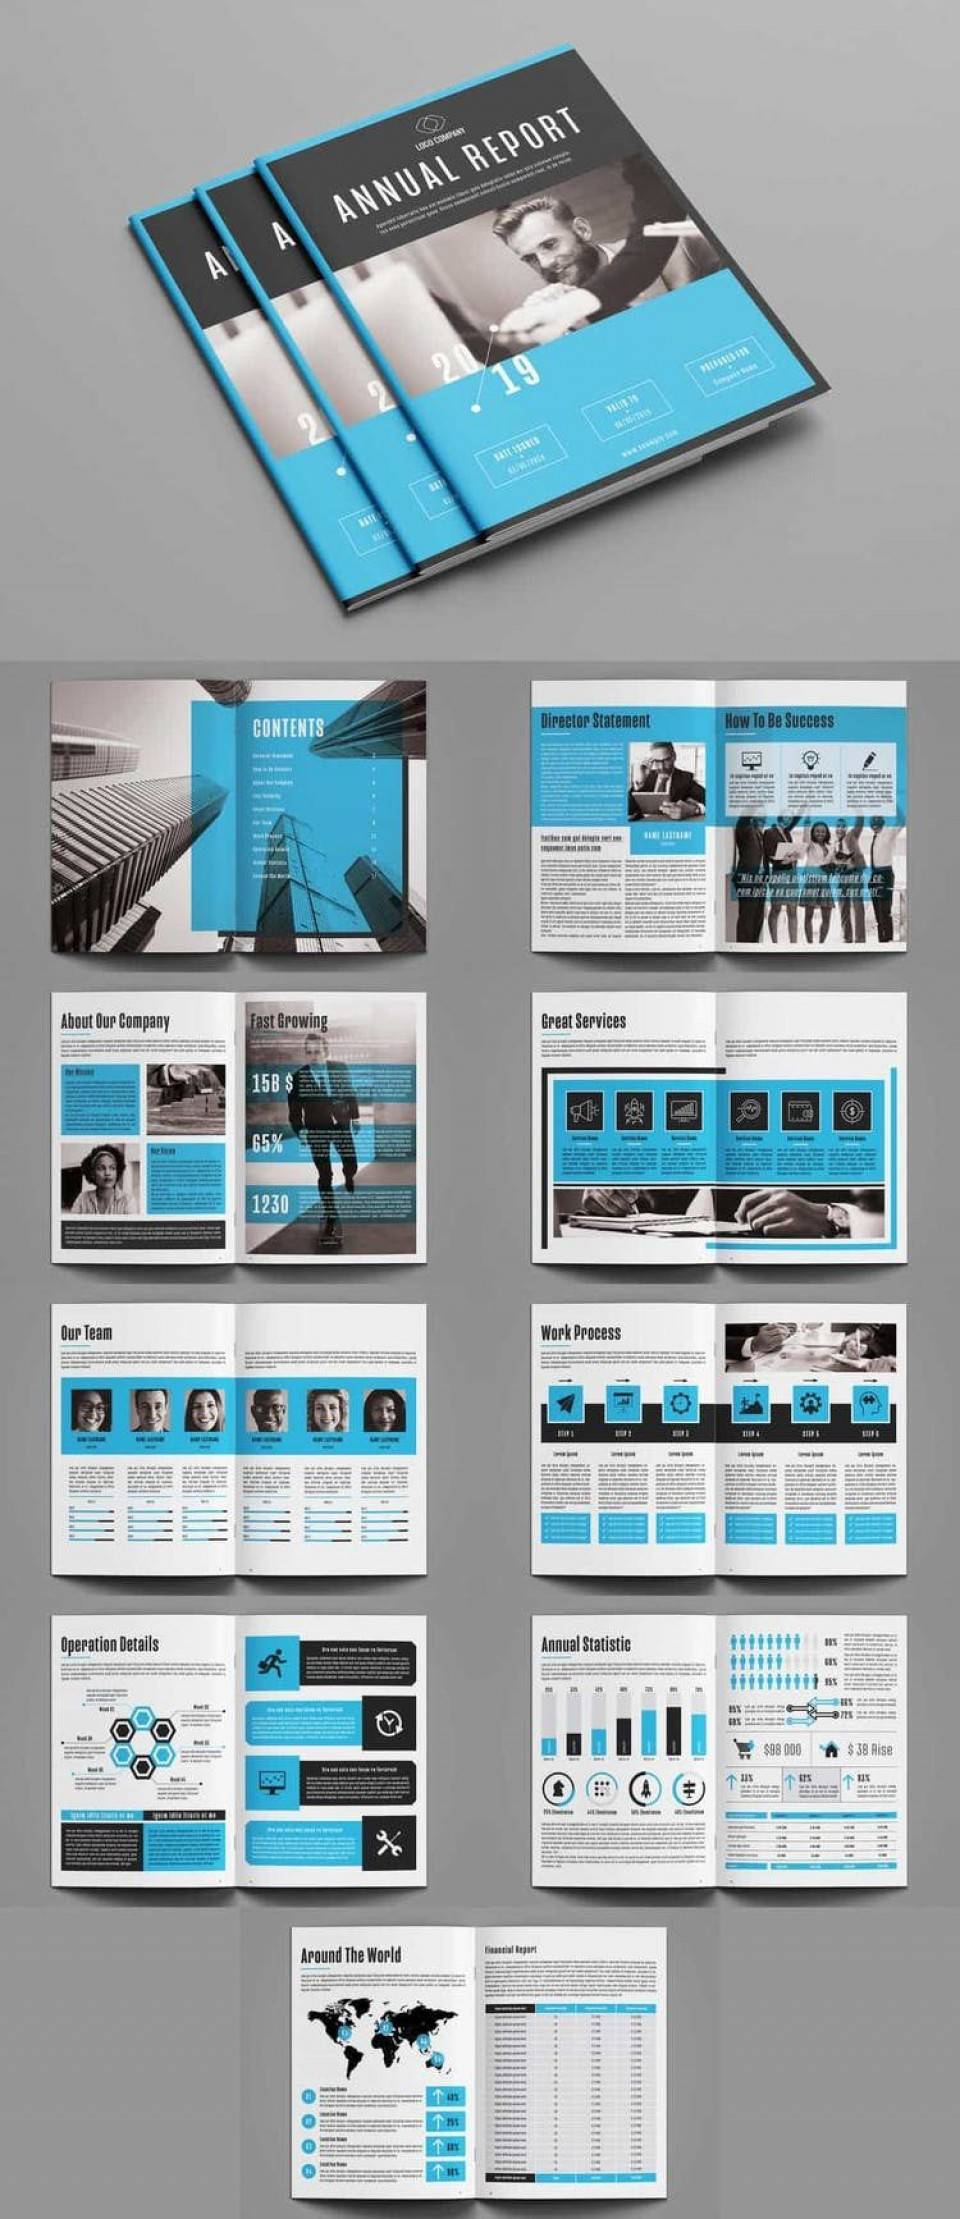 005 Best Annual Report Design Template Indesign Concept  Free Download960